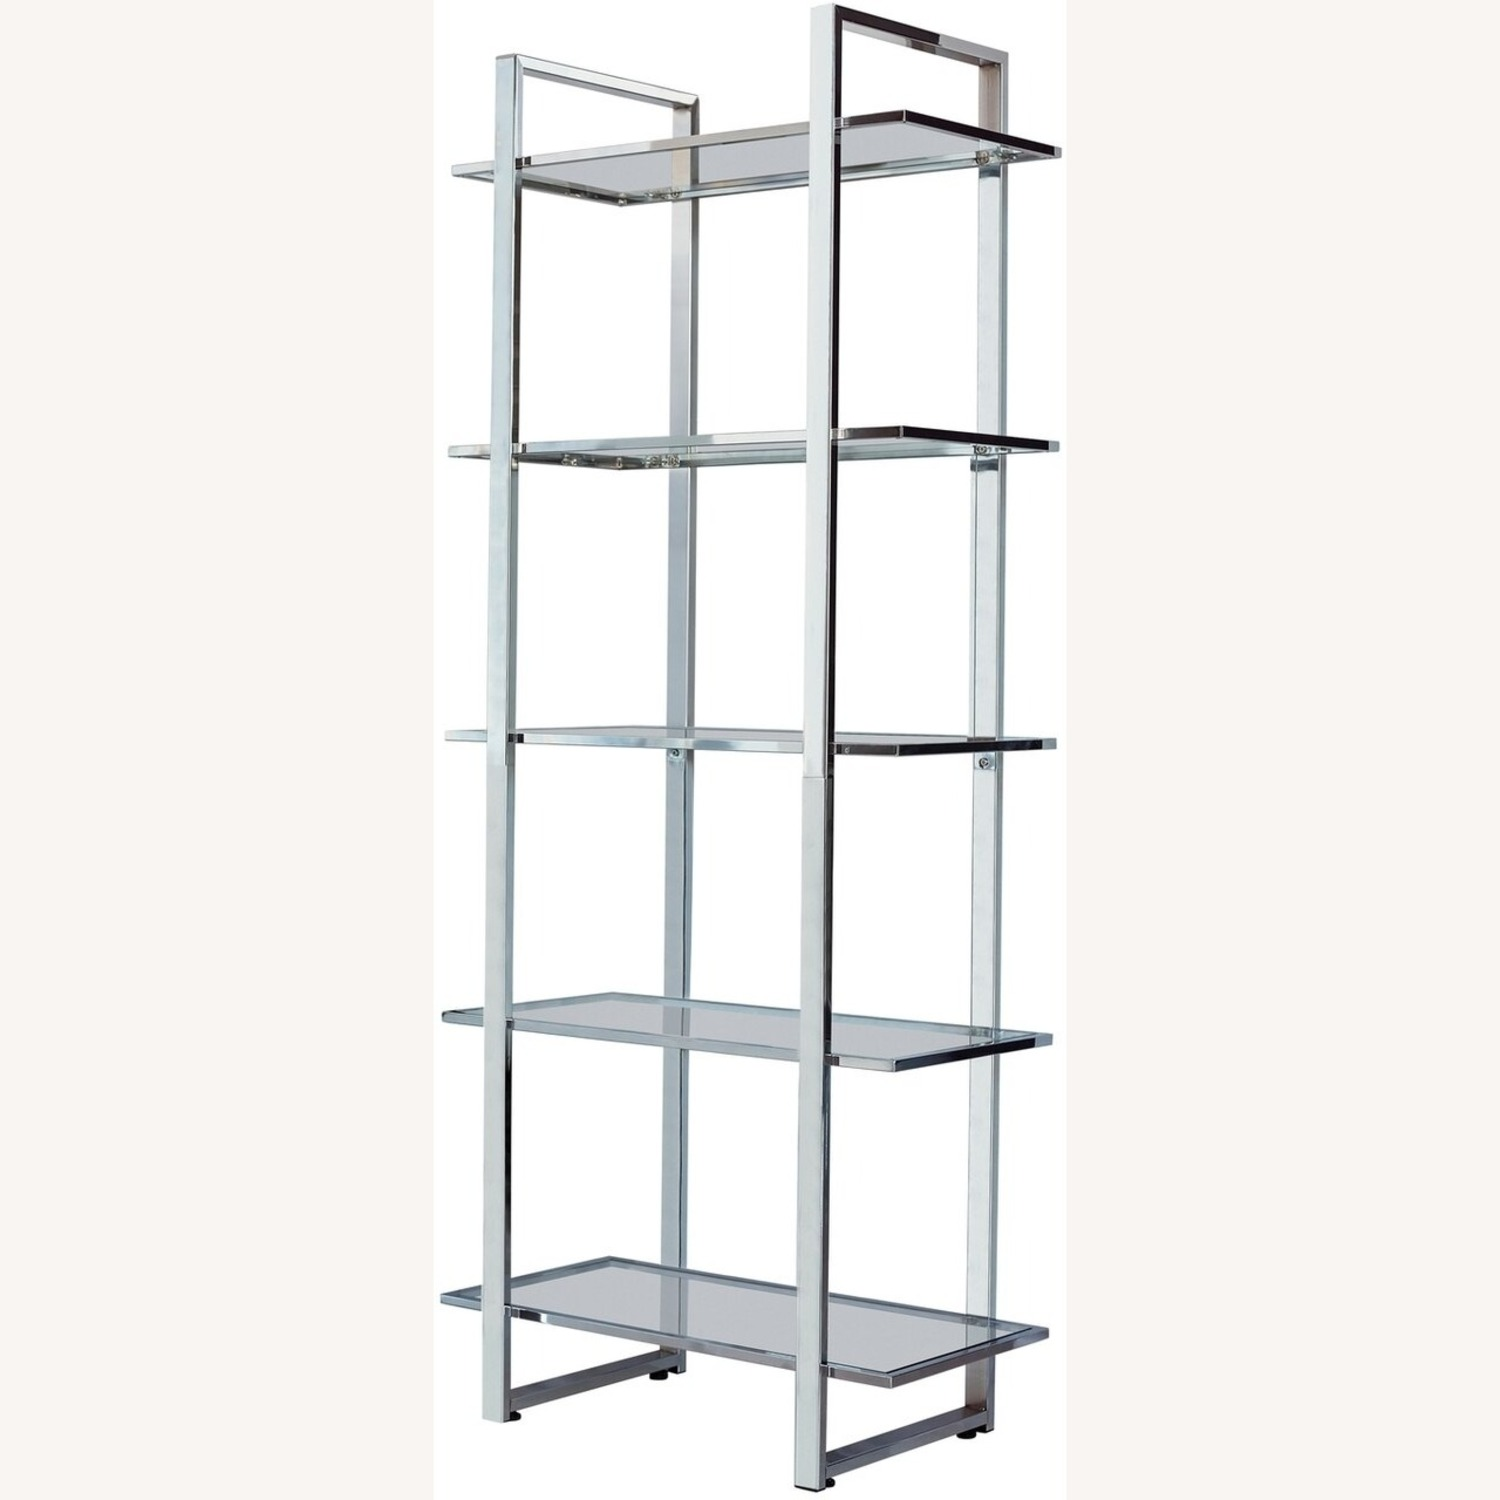 Bookcase In Chrome Finish W/ 5-Tier Shelves - image-1